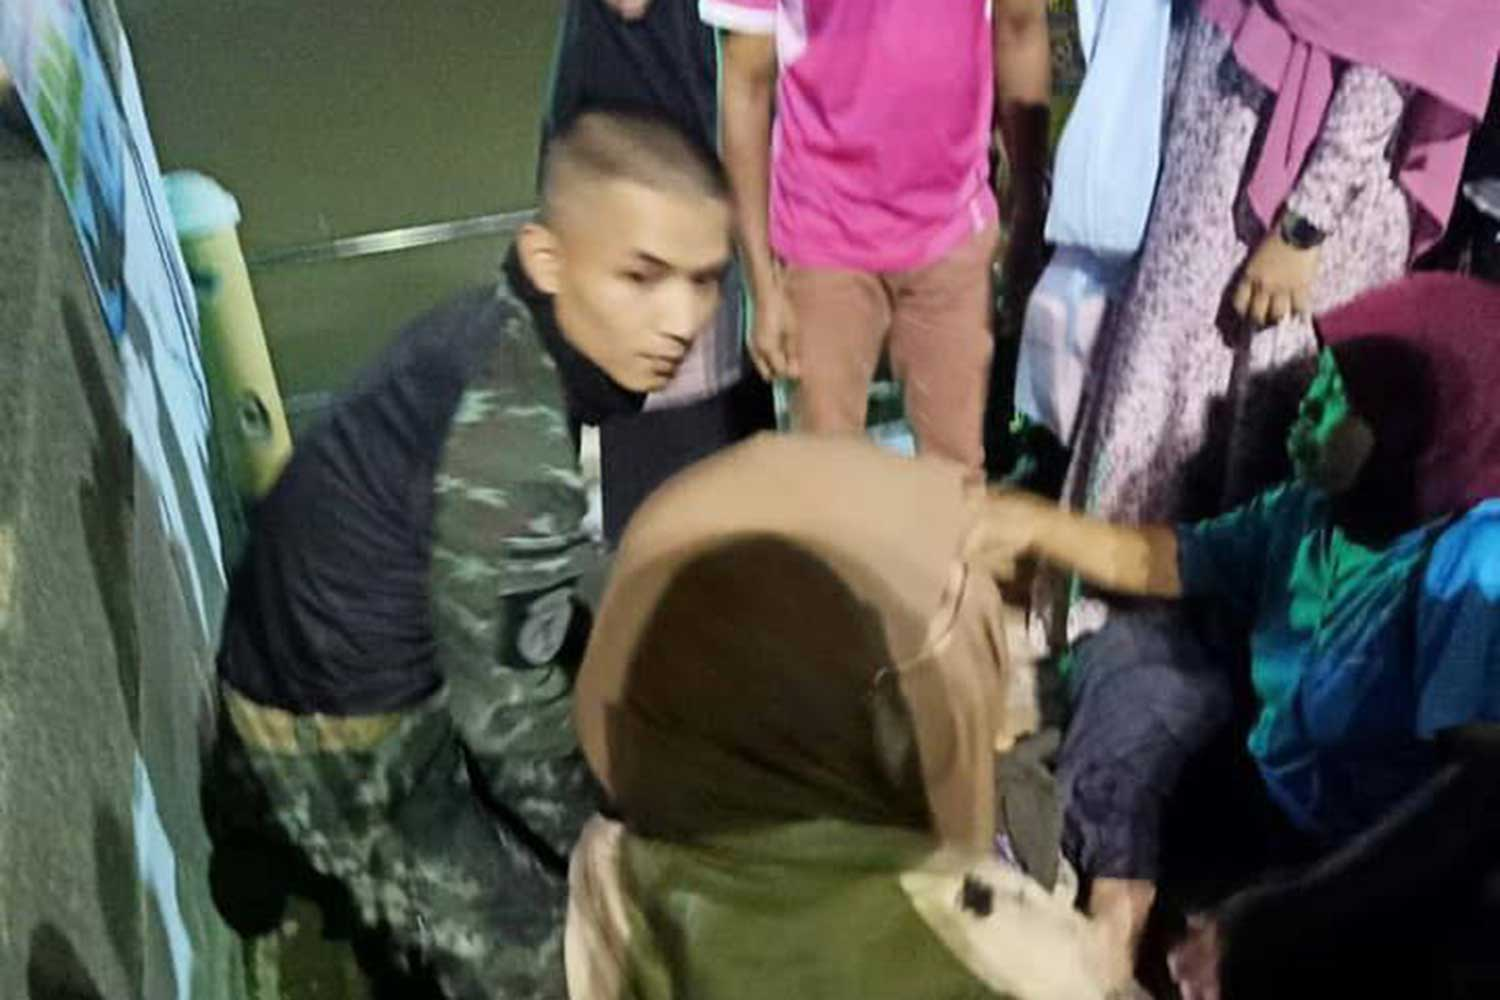 Sgt Khunakorn Sonsrimai takes an 18-year-old woman from the Pattani River in Muang district of Pattani late Friday night. (Photo by Abdullah Benjakat)